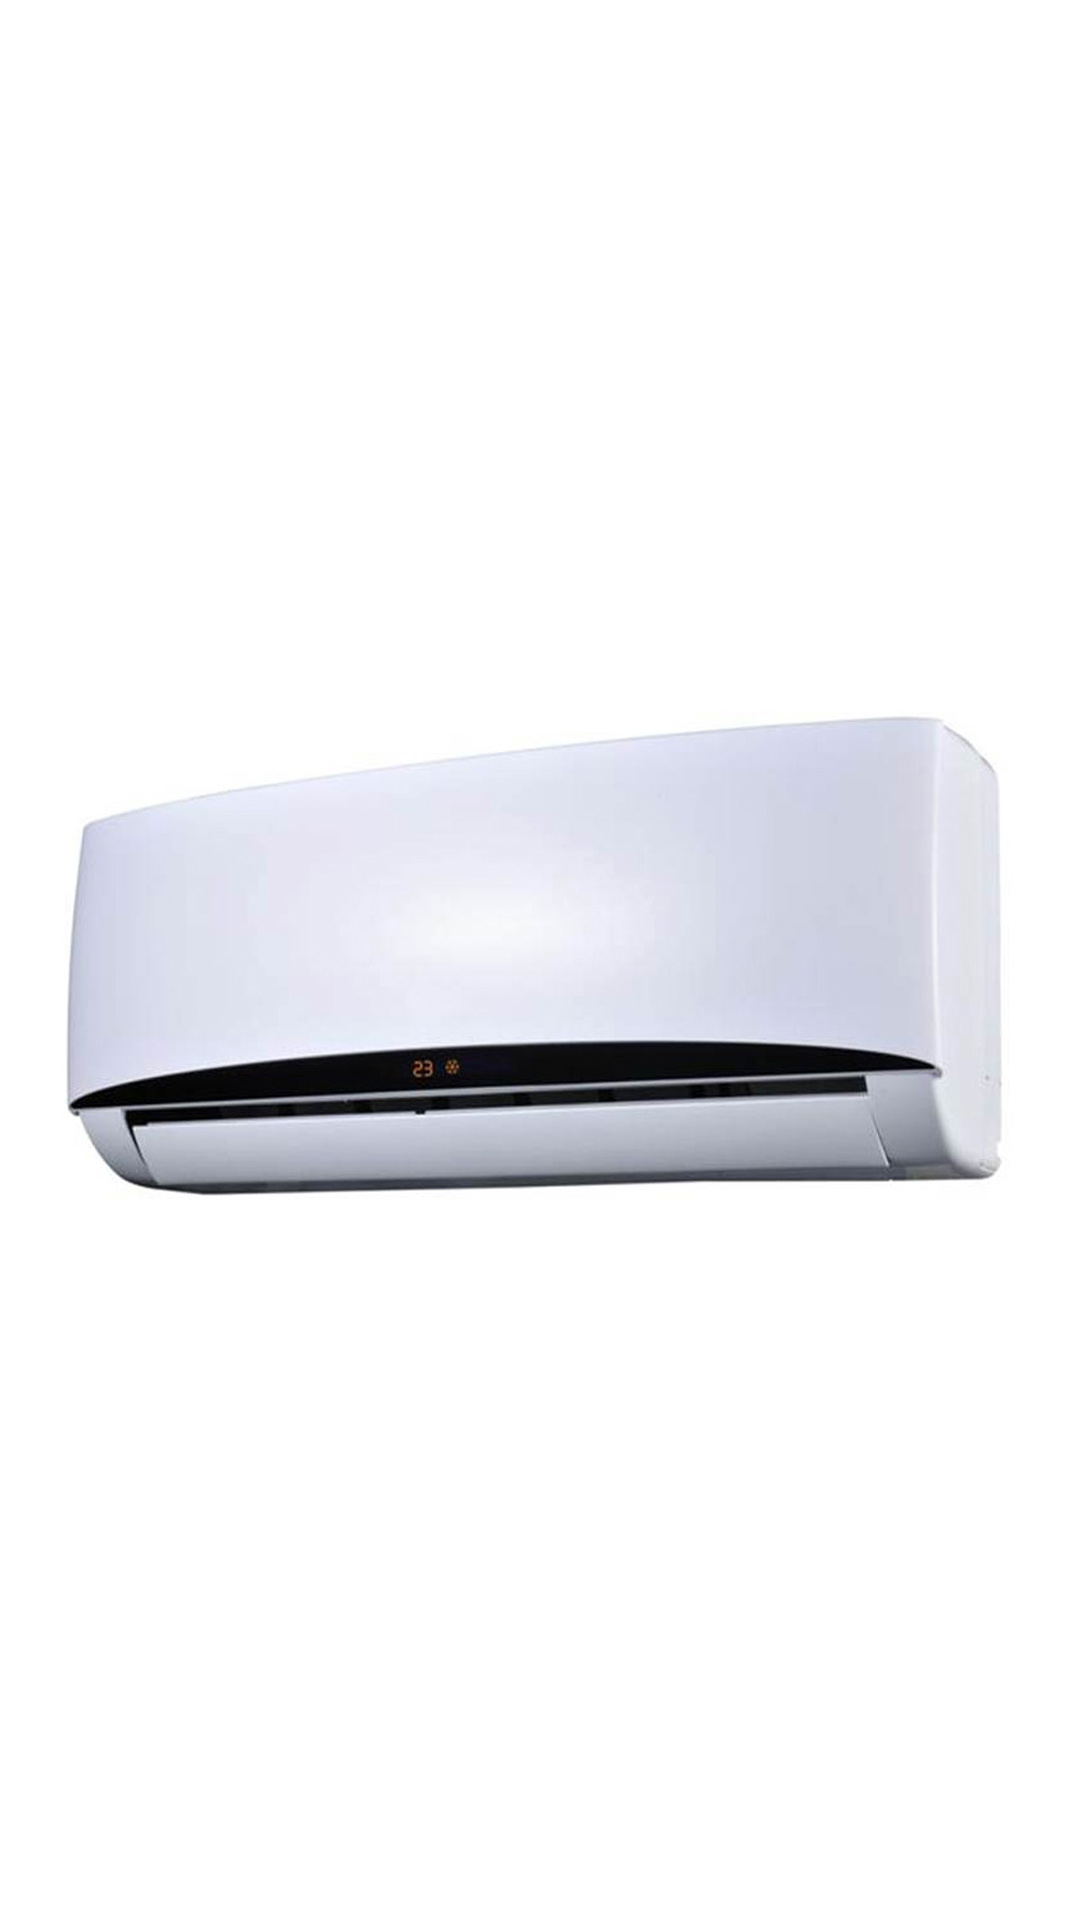 Lloyd LS24A3LN 2 Ton 3 Star Split AC (White)